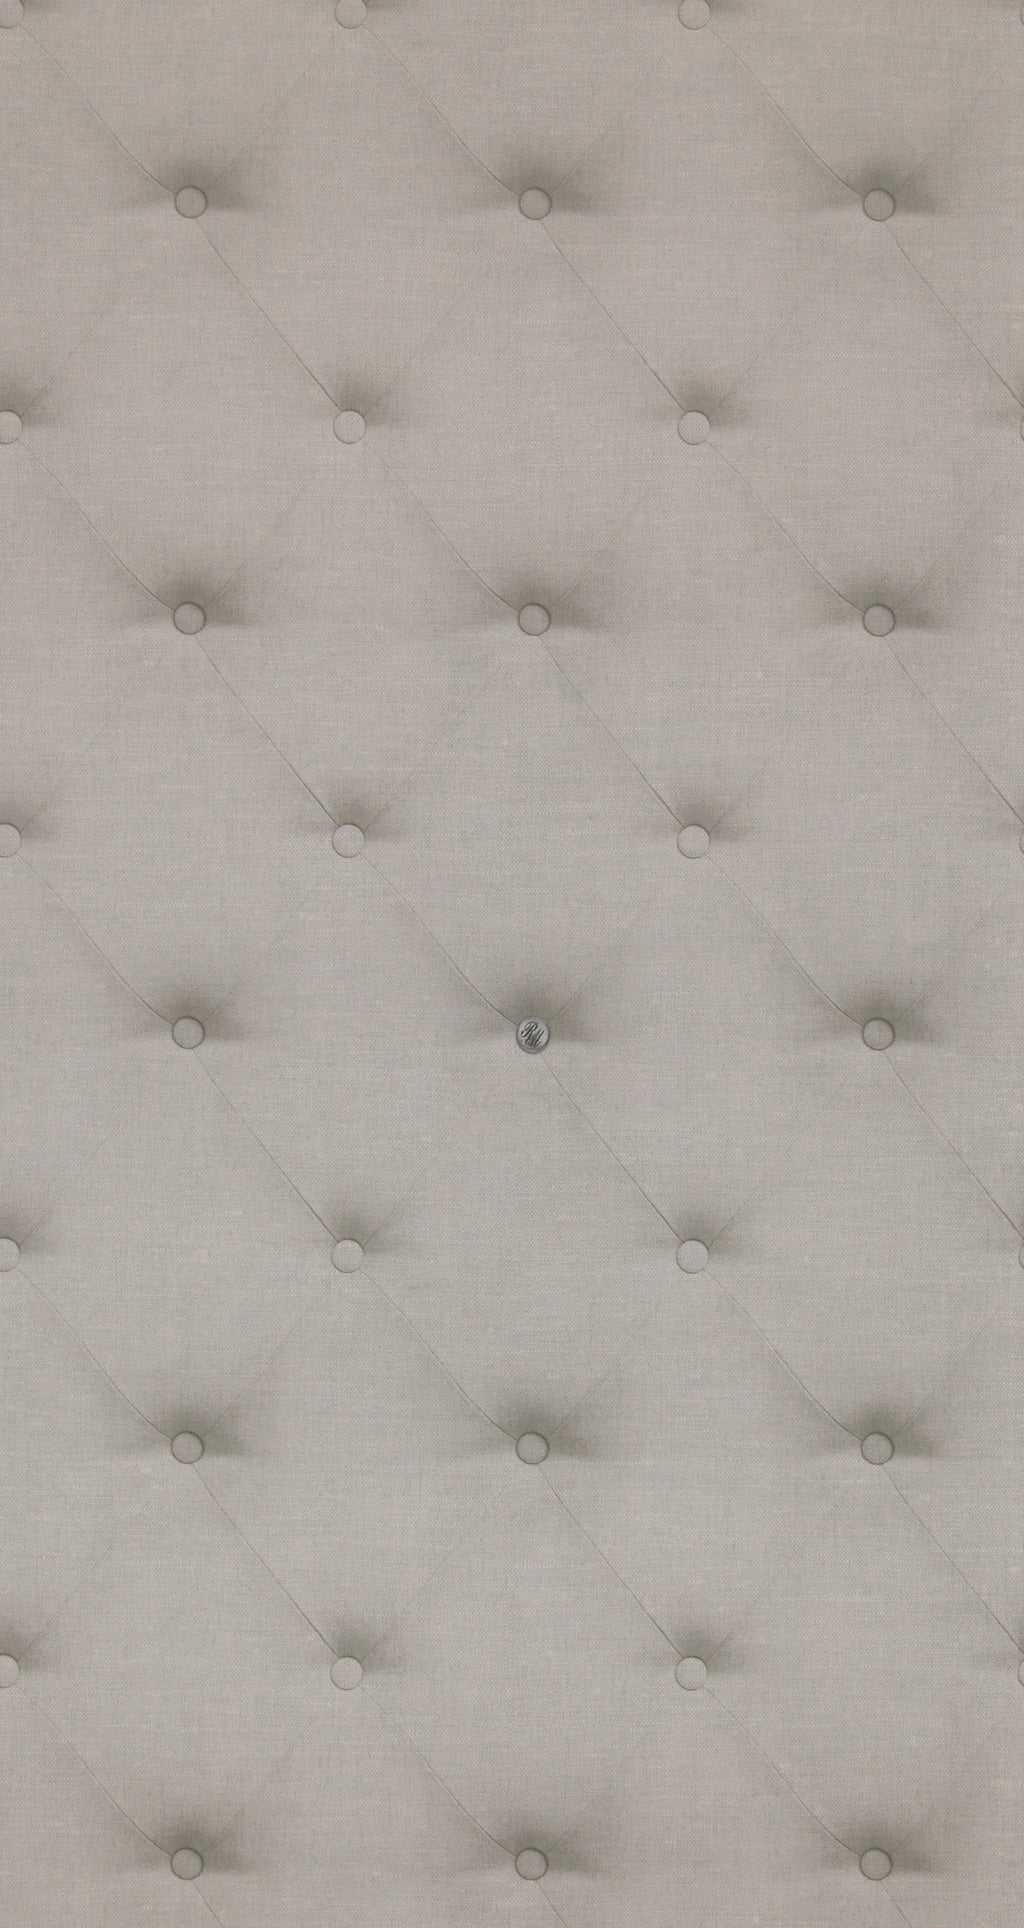 Fossil Grey Cushion Wallpaper R4326 | Contemporary Home Wall Covering